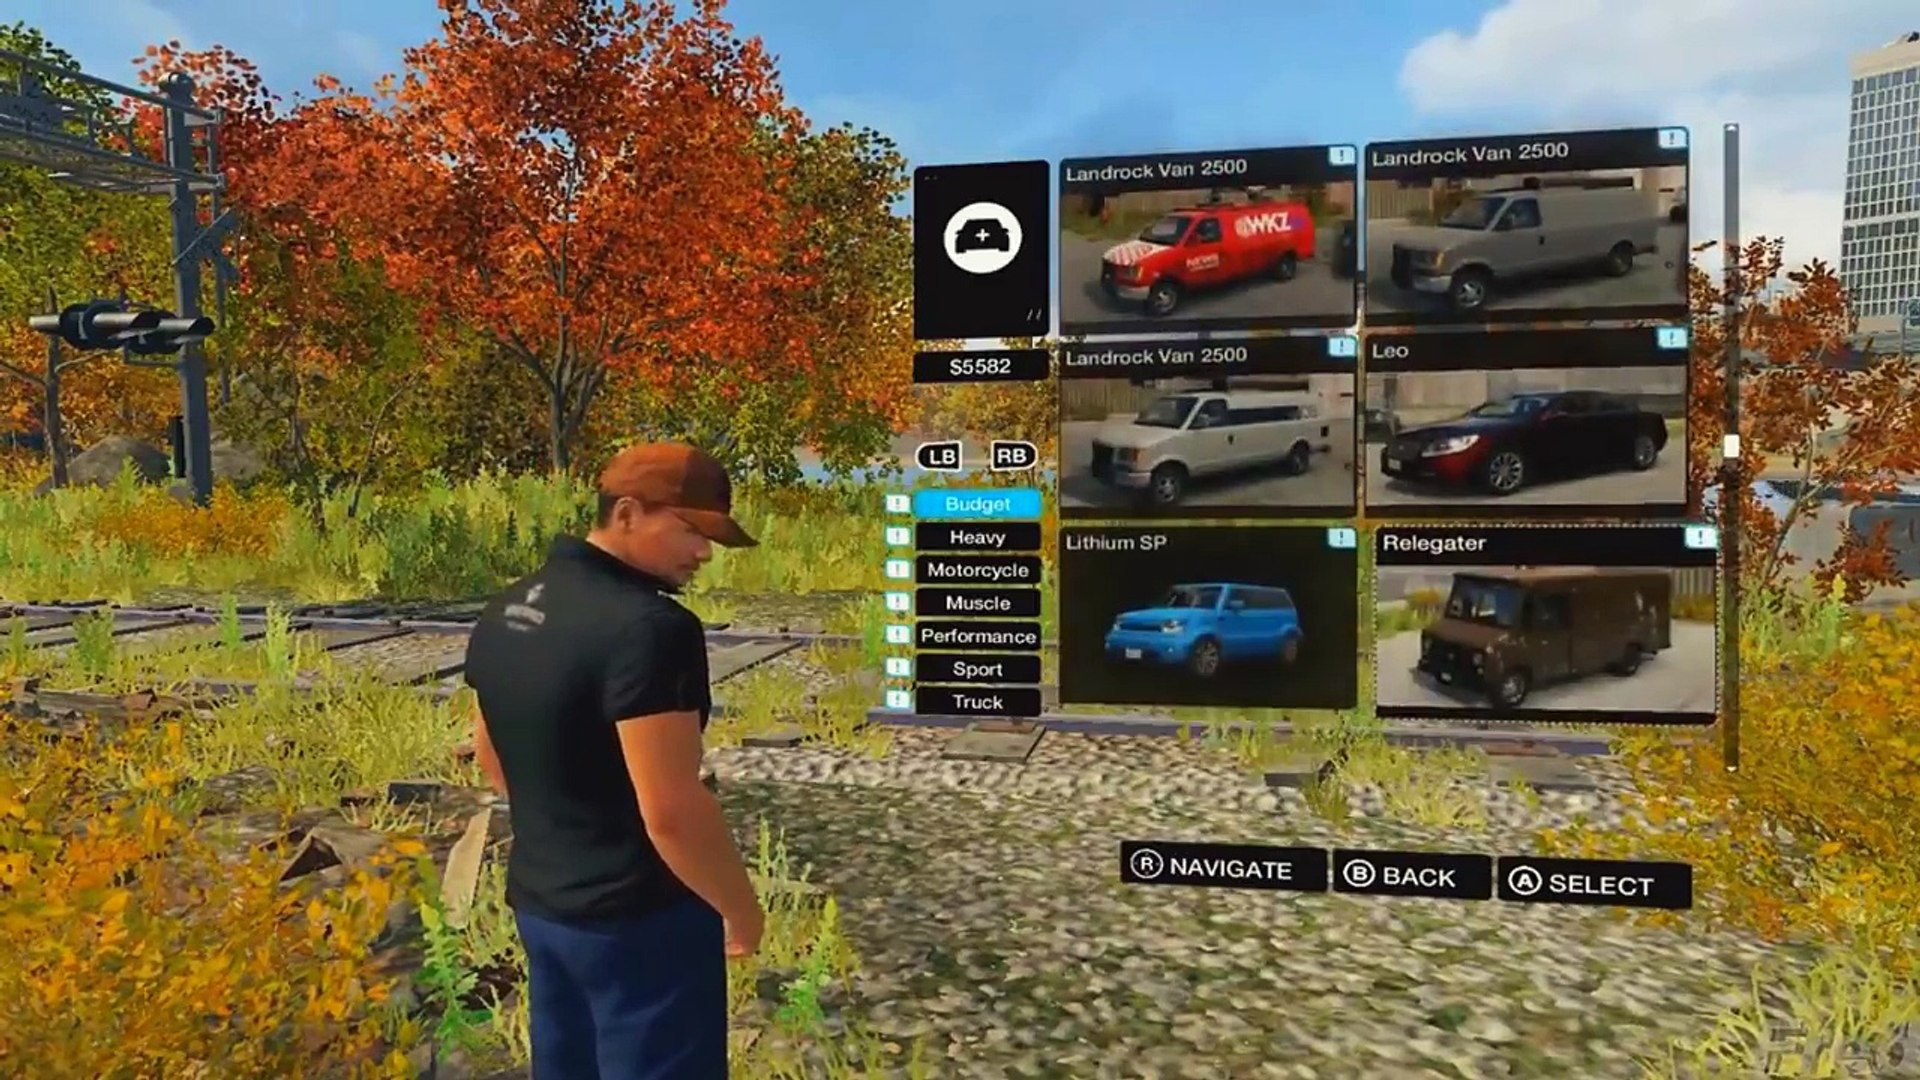 Watch Dogs - Cars and Character MOD for Watch Dogs